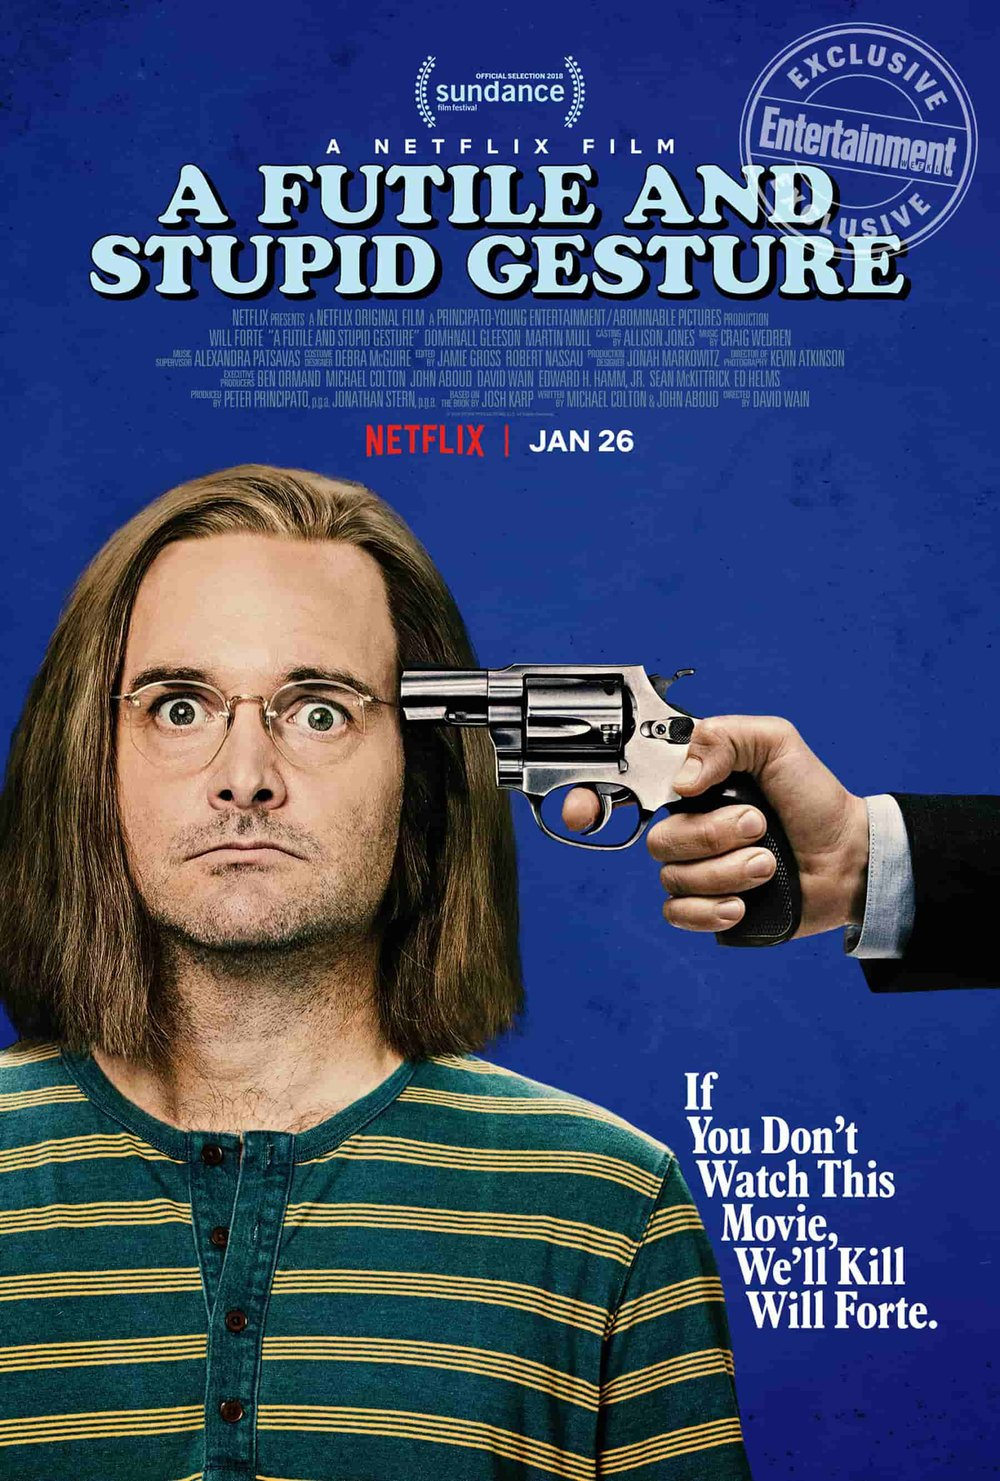 Will Forte for Netflix's A Futile And Stupid Gesture, Shot in Los Angeles | Commercial Photography